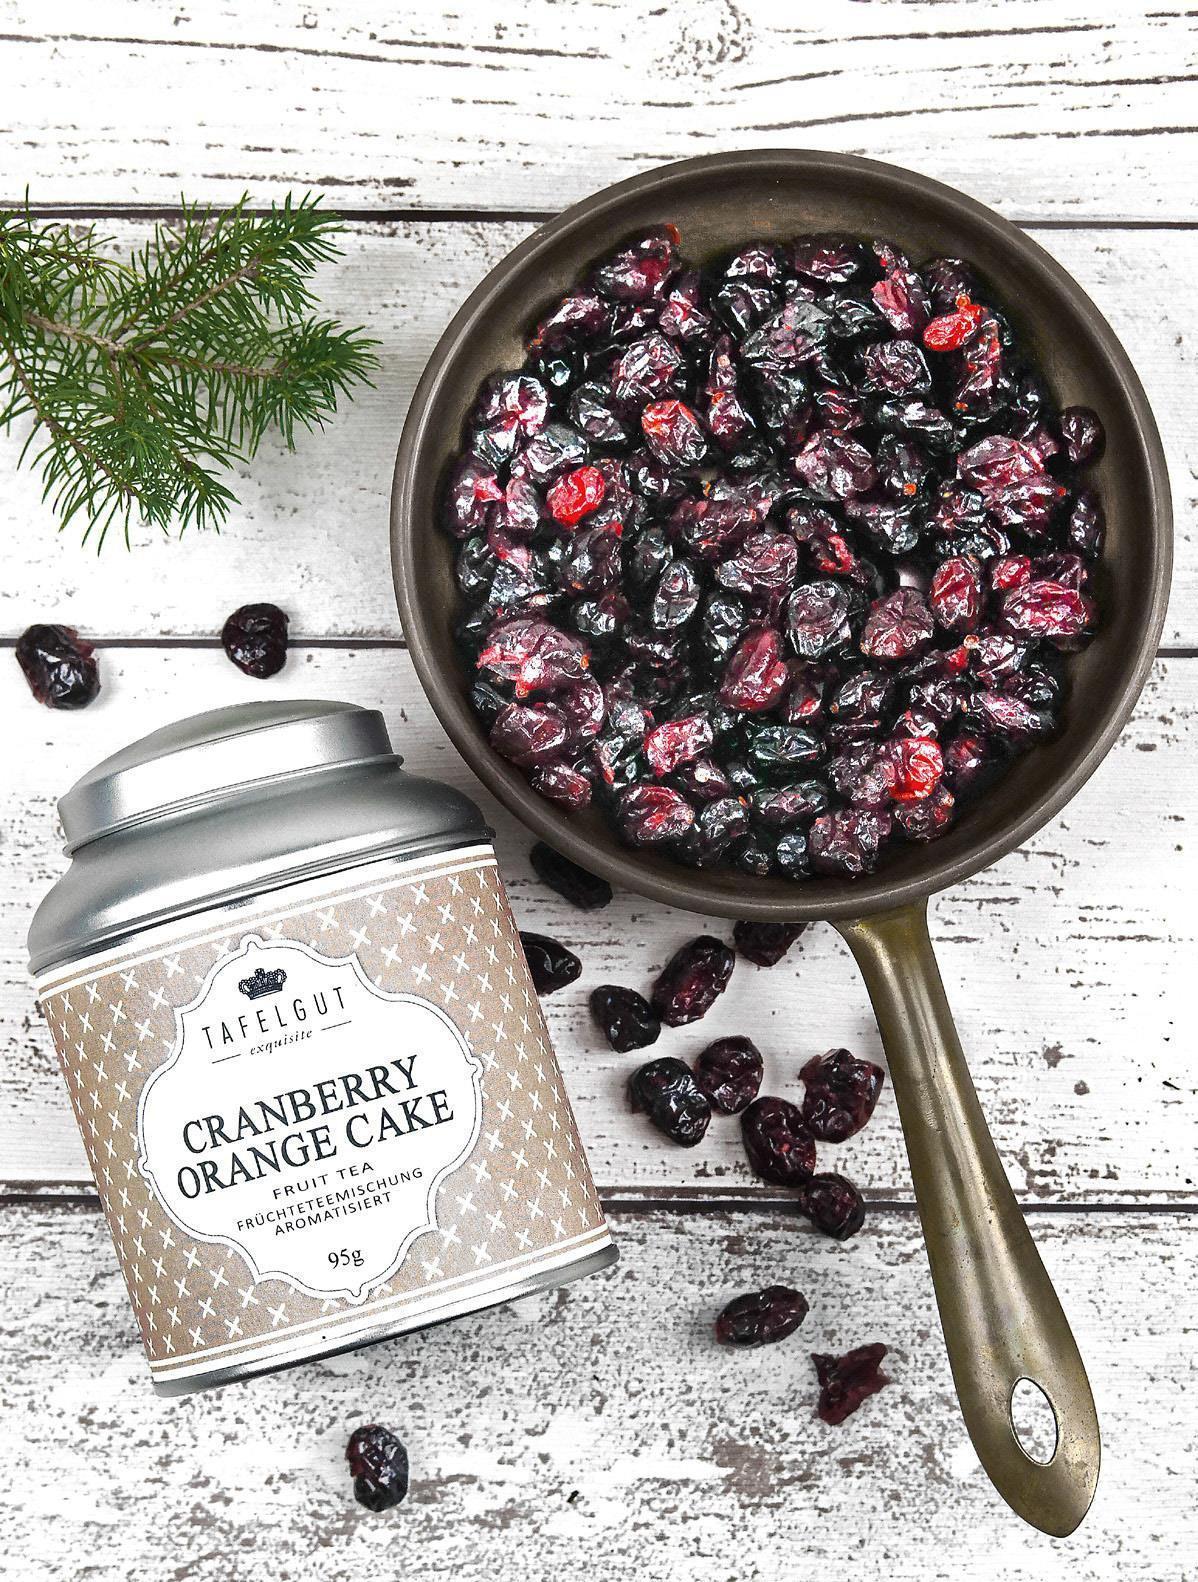 TAFELGUT Ovocný čaj Cranberry orange cake - 95gr